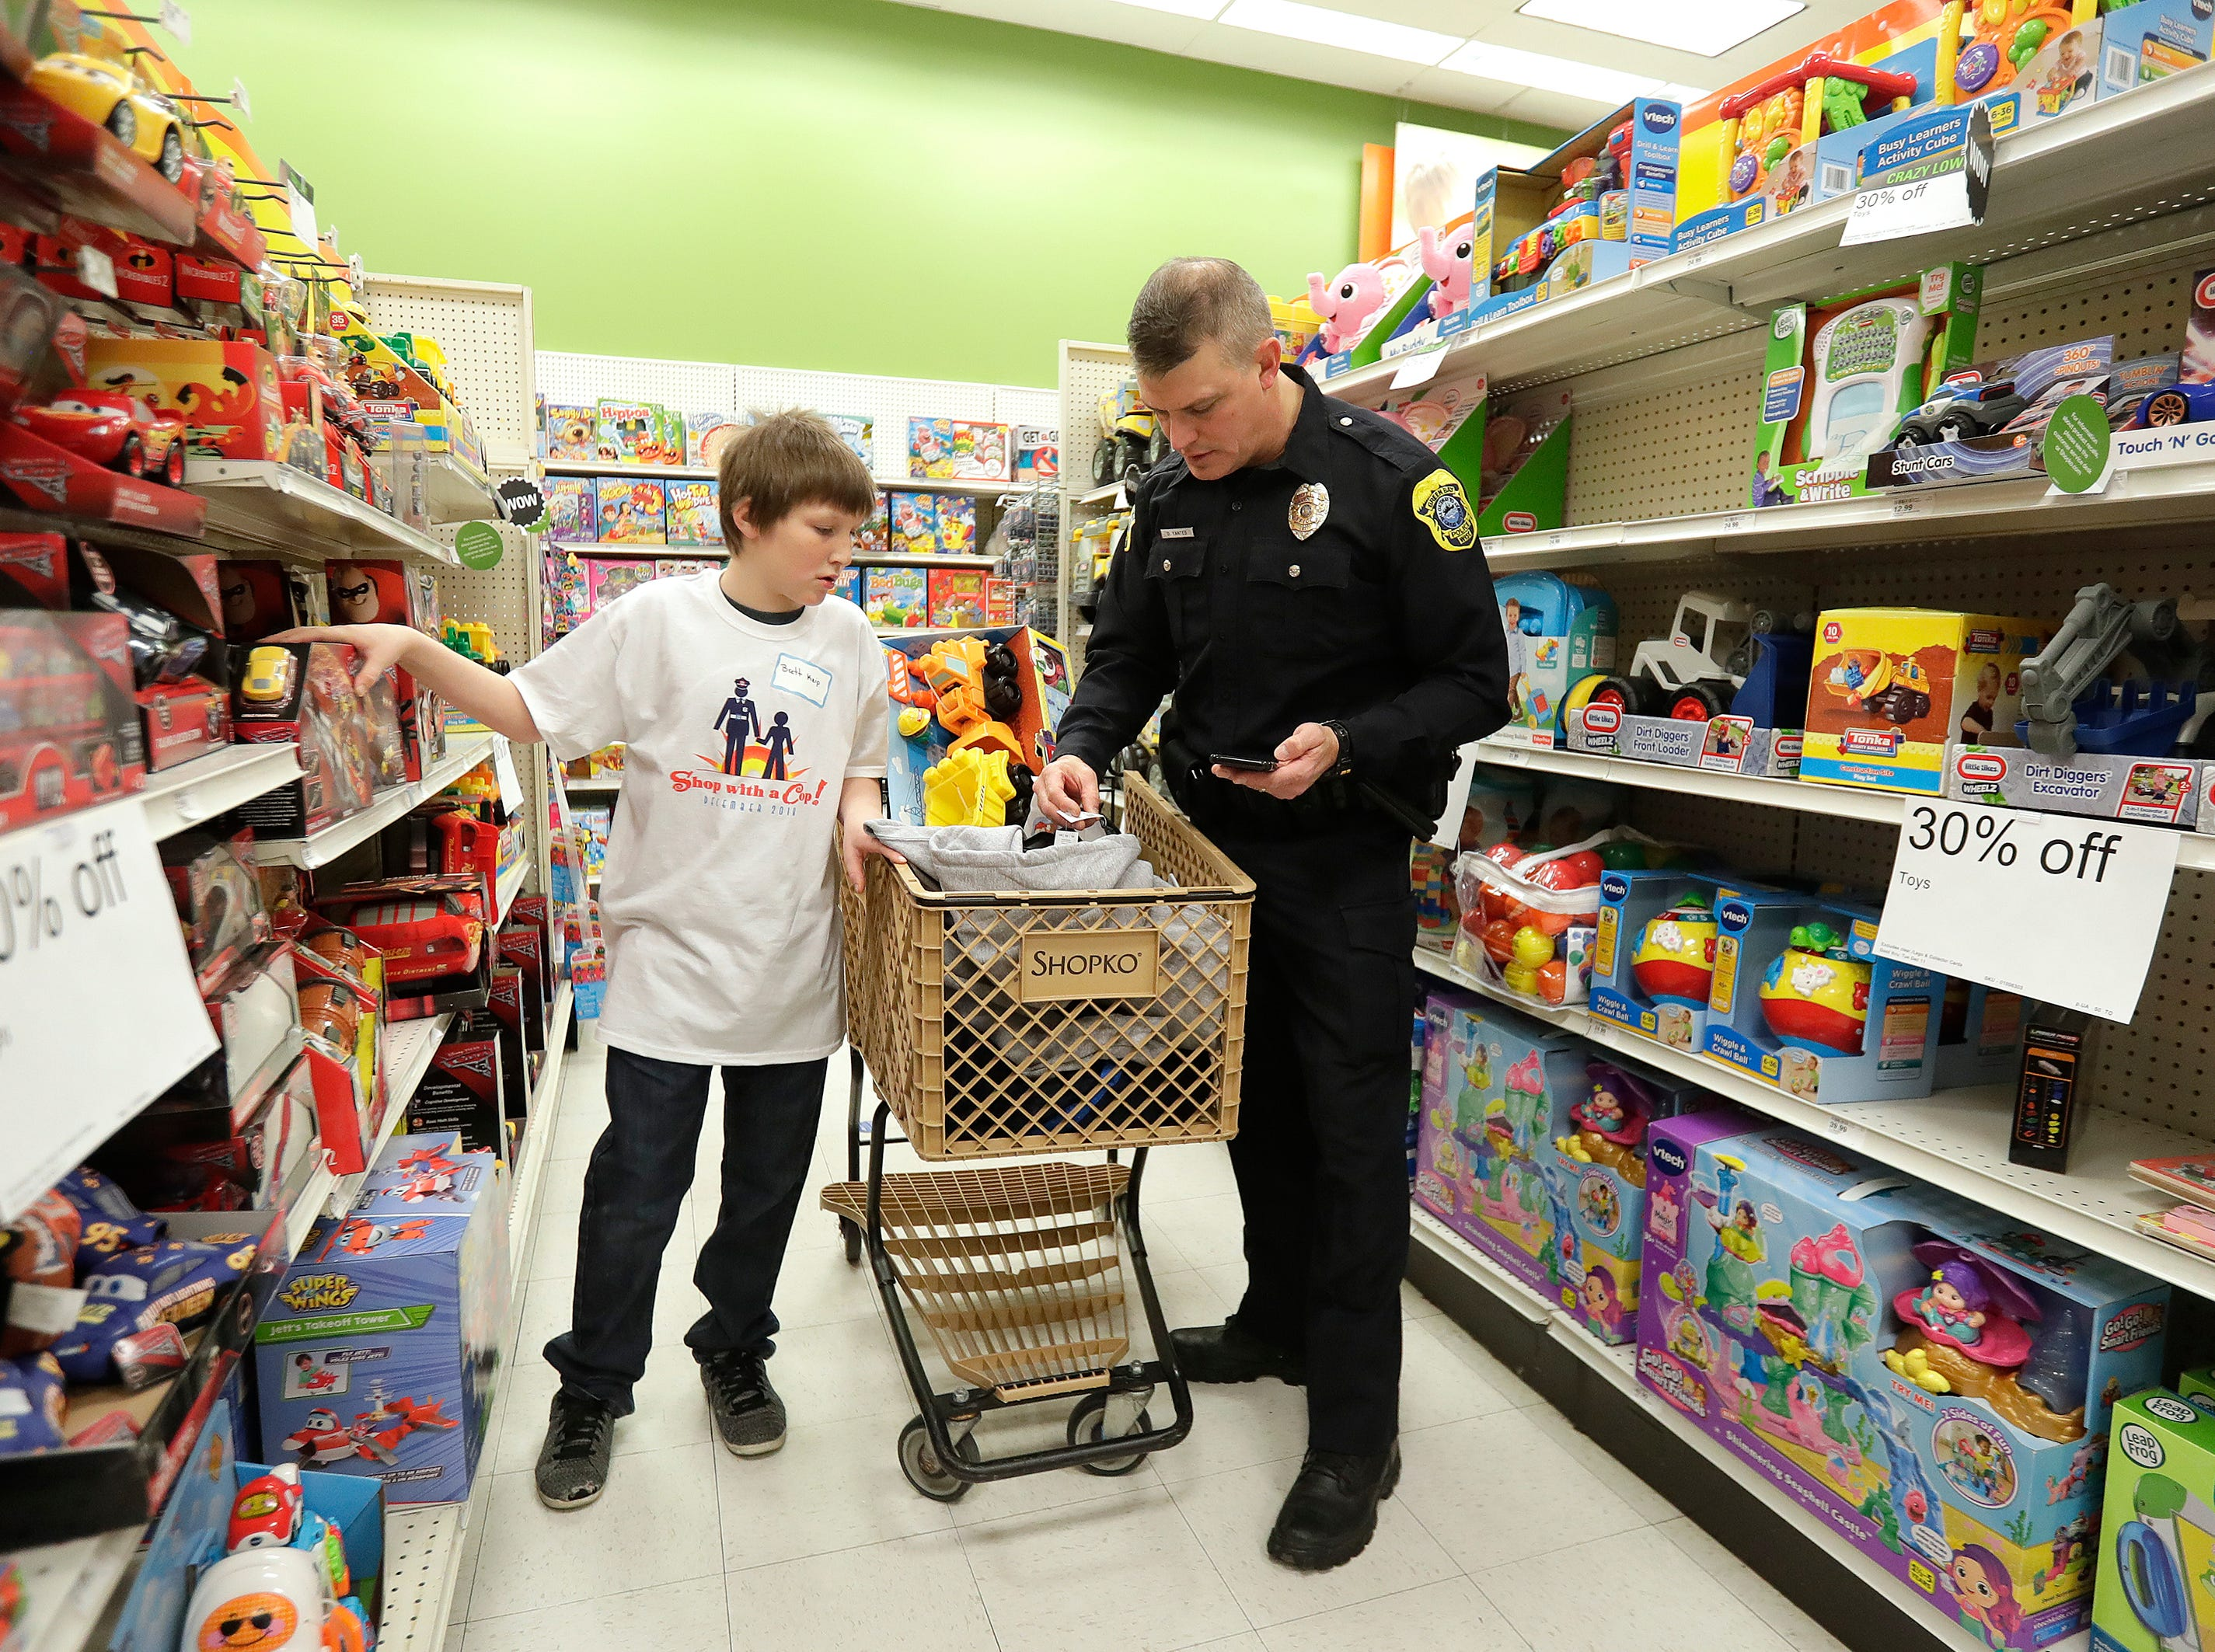 Green Bay Police Department Officer Officer Daniel Yantes shops with his Shop with A Cop program kid at Shopko on East Mason Street December 8, 2018 in Green Bay, Wis.